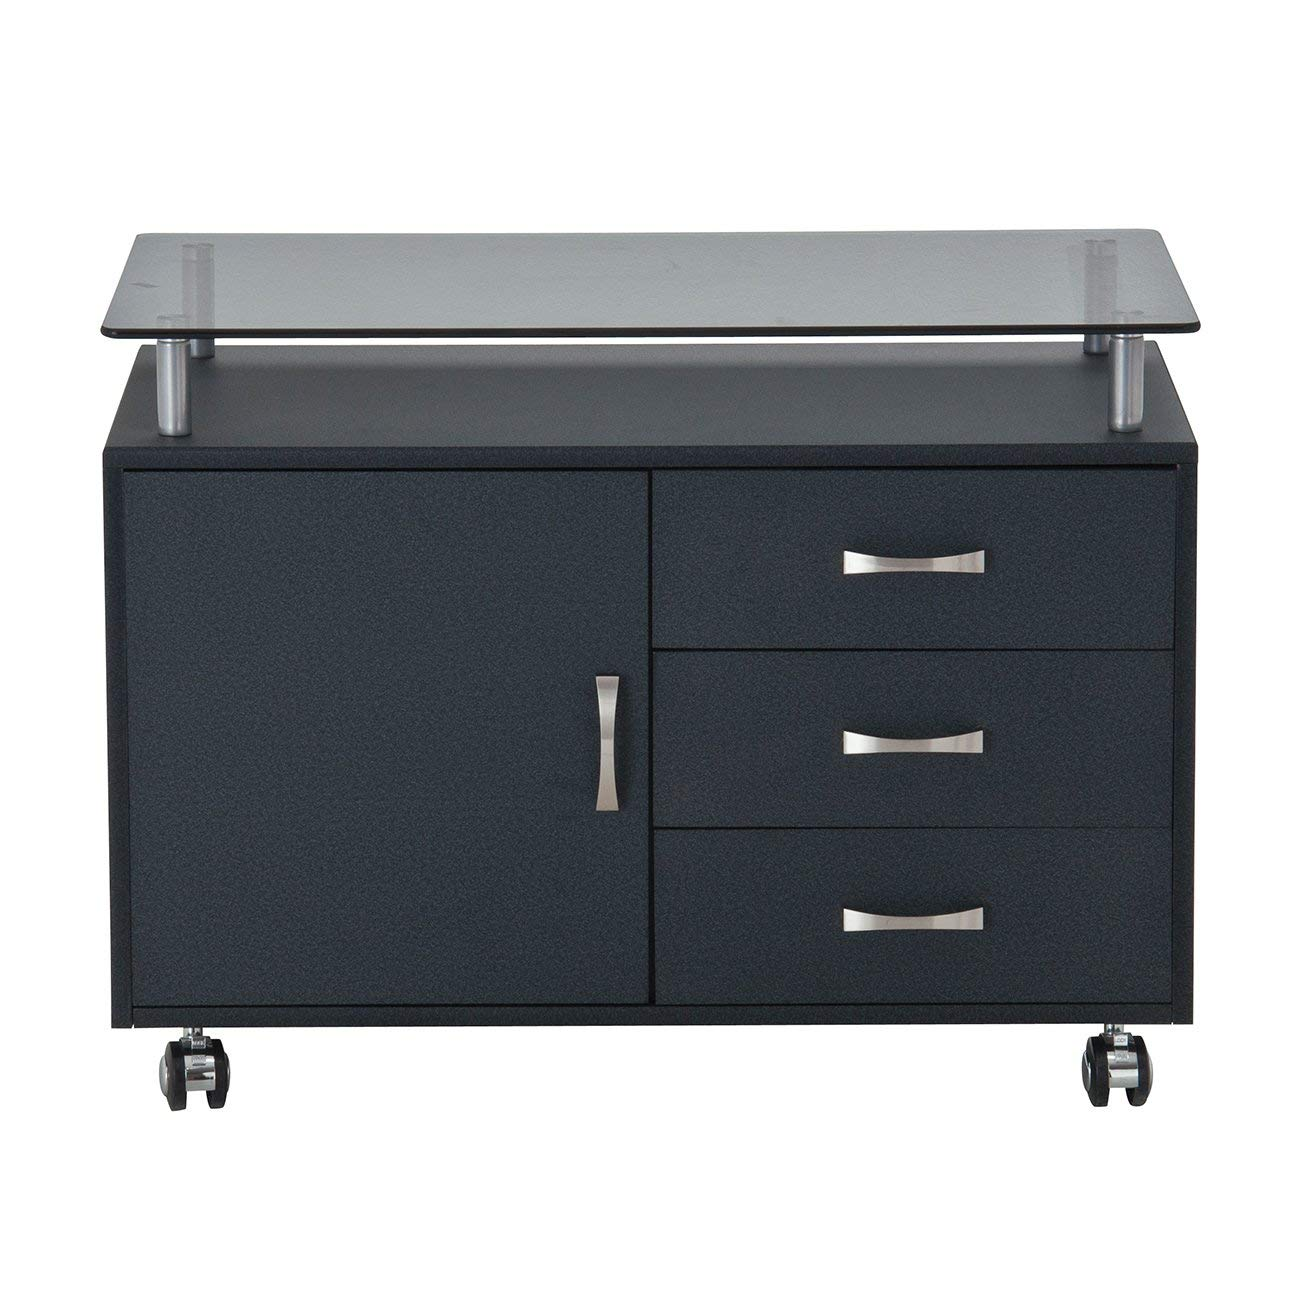 Rolling Storage Cabinet With Frosted Glass Top. Color: Graphite by Techni Mobili (Image #5)